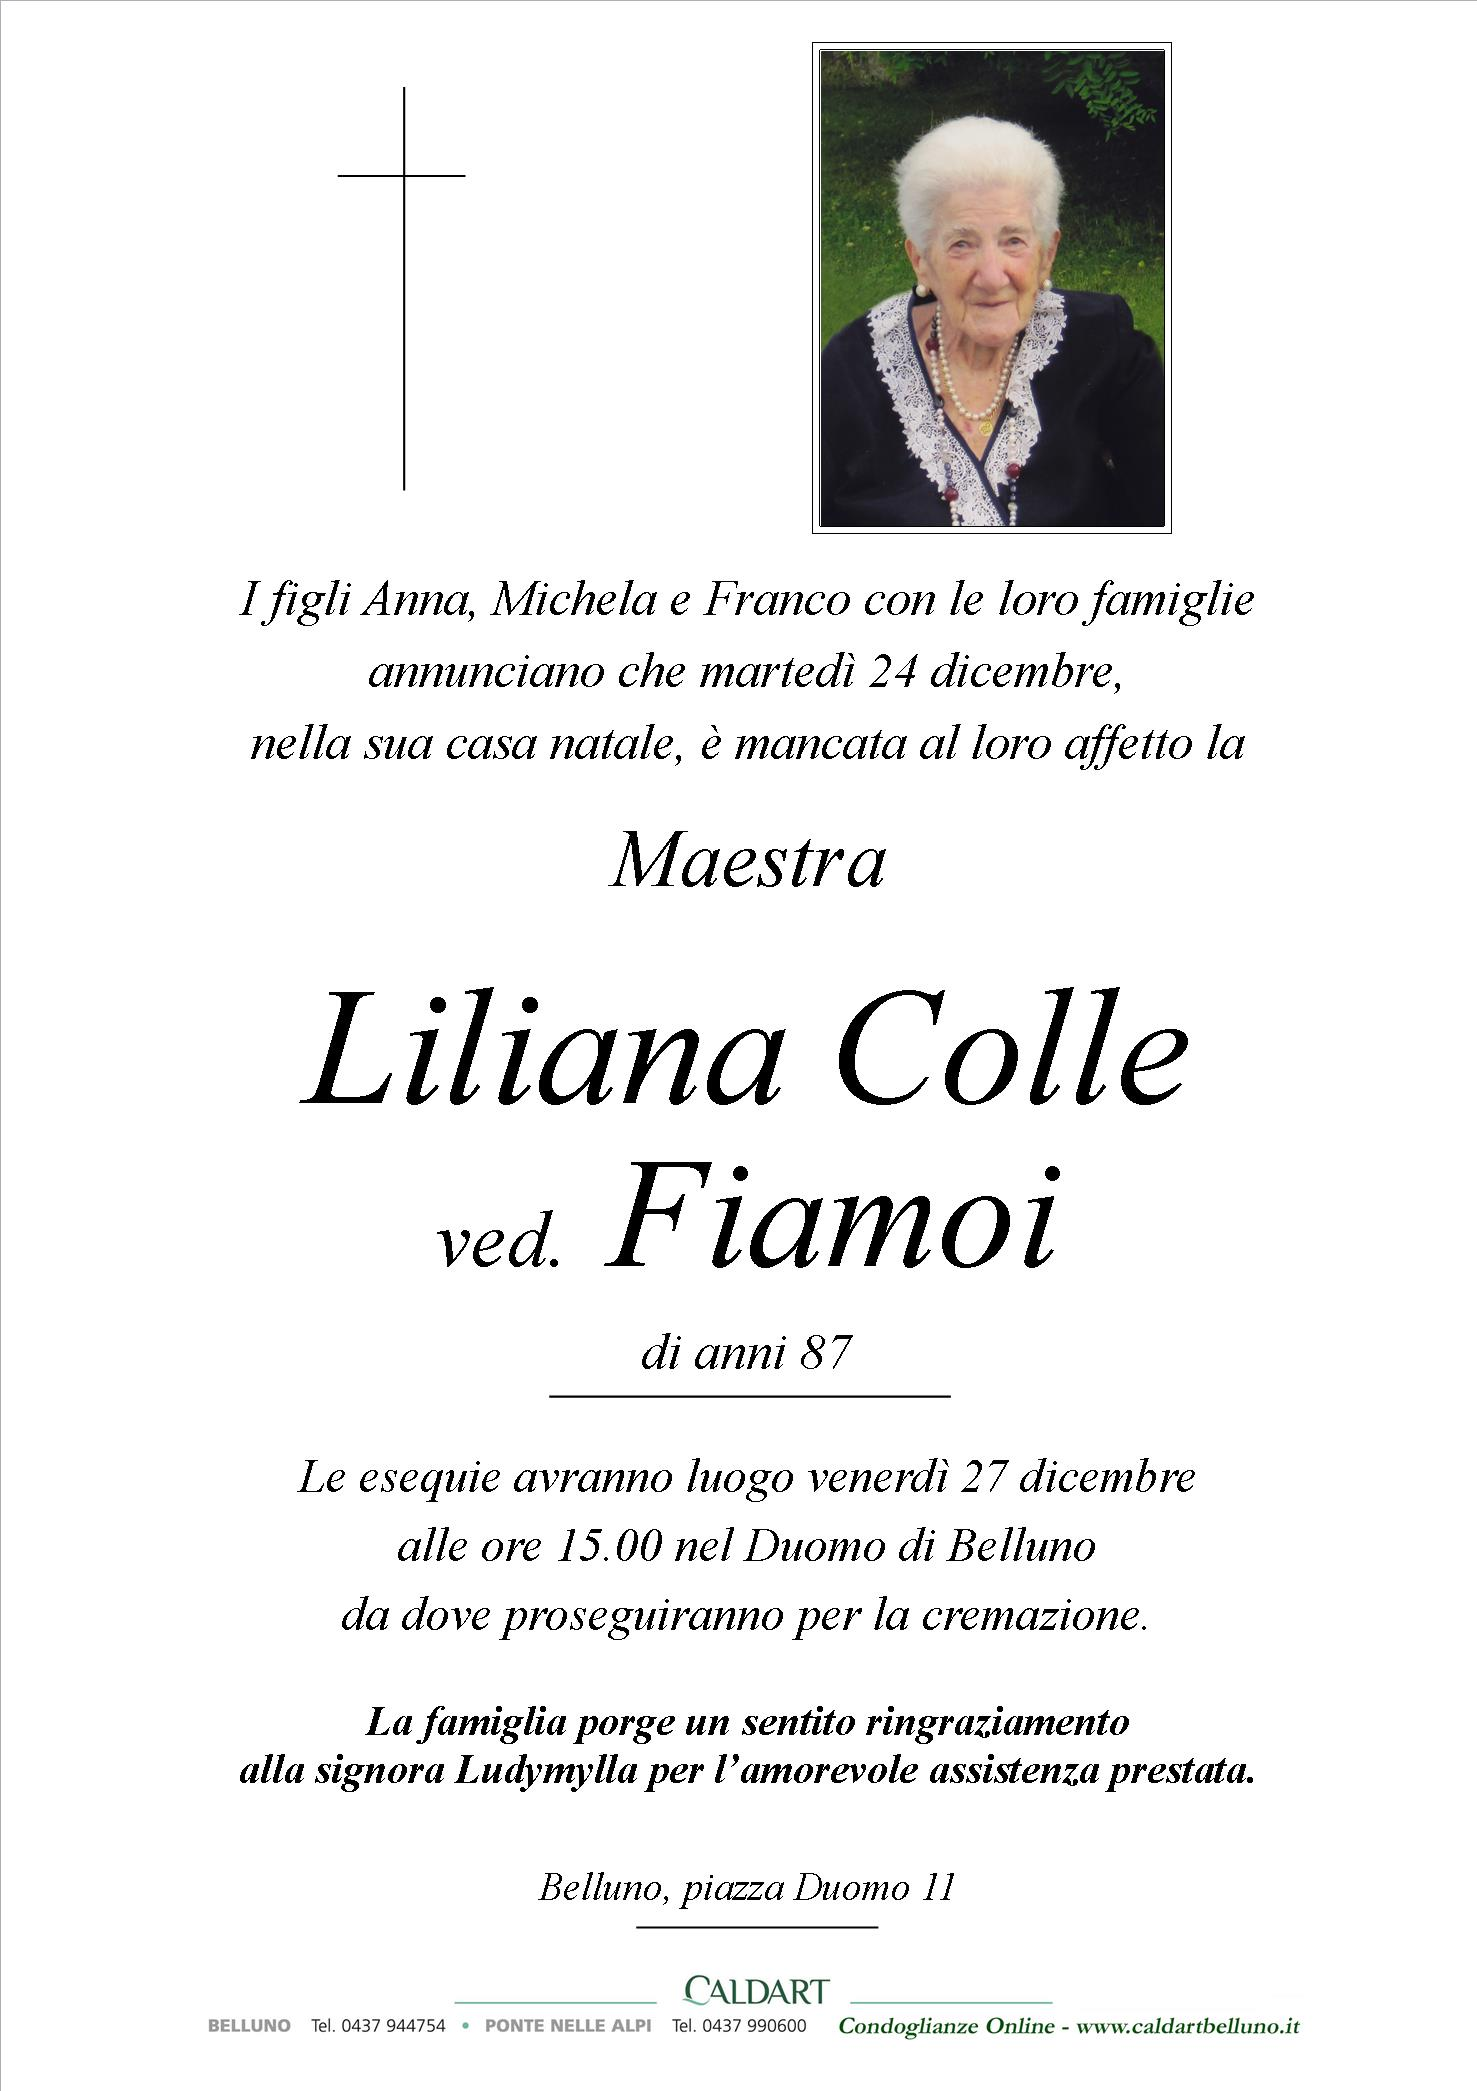 Colle Liliana